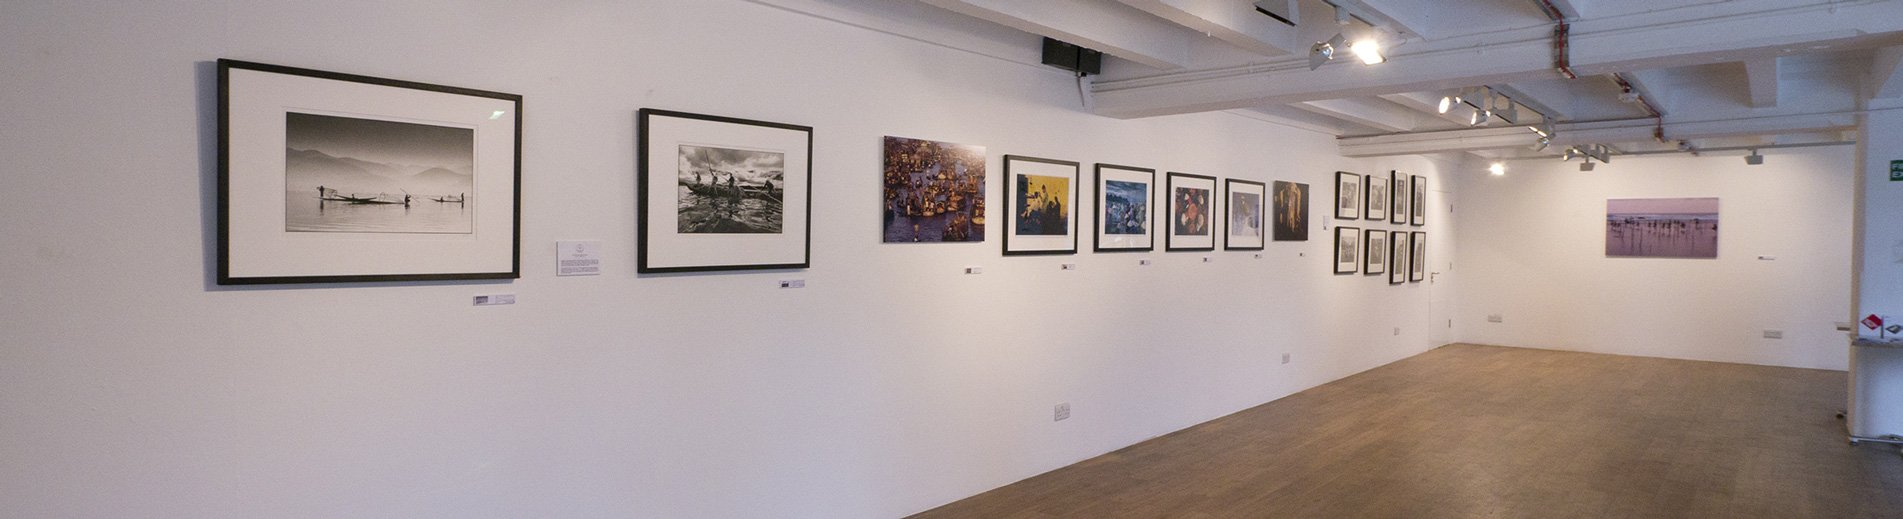 Hans' images on display in London.